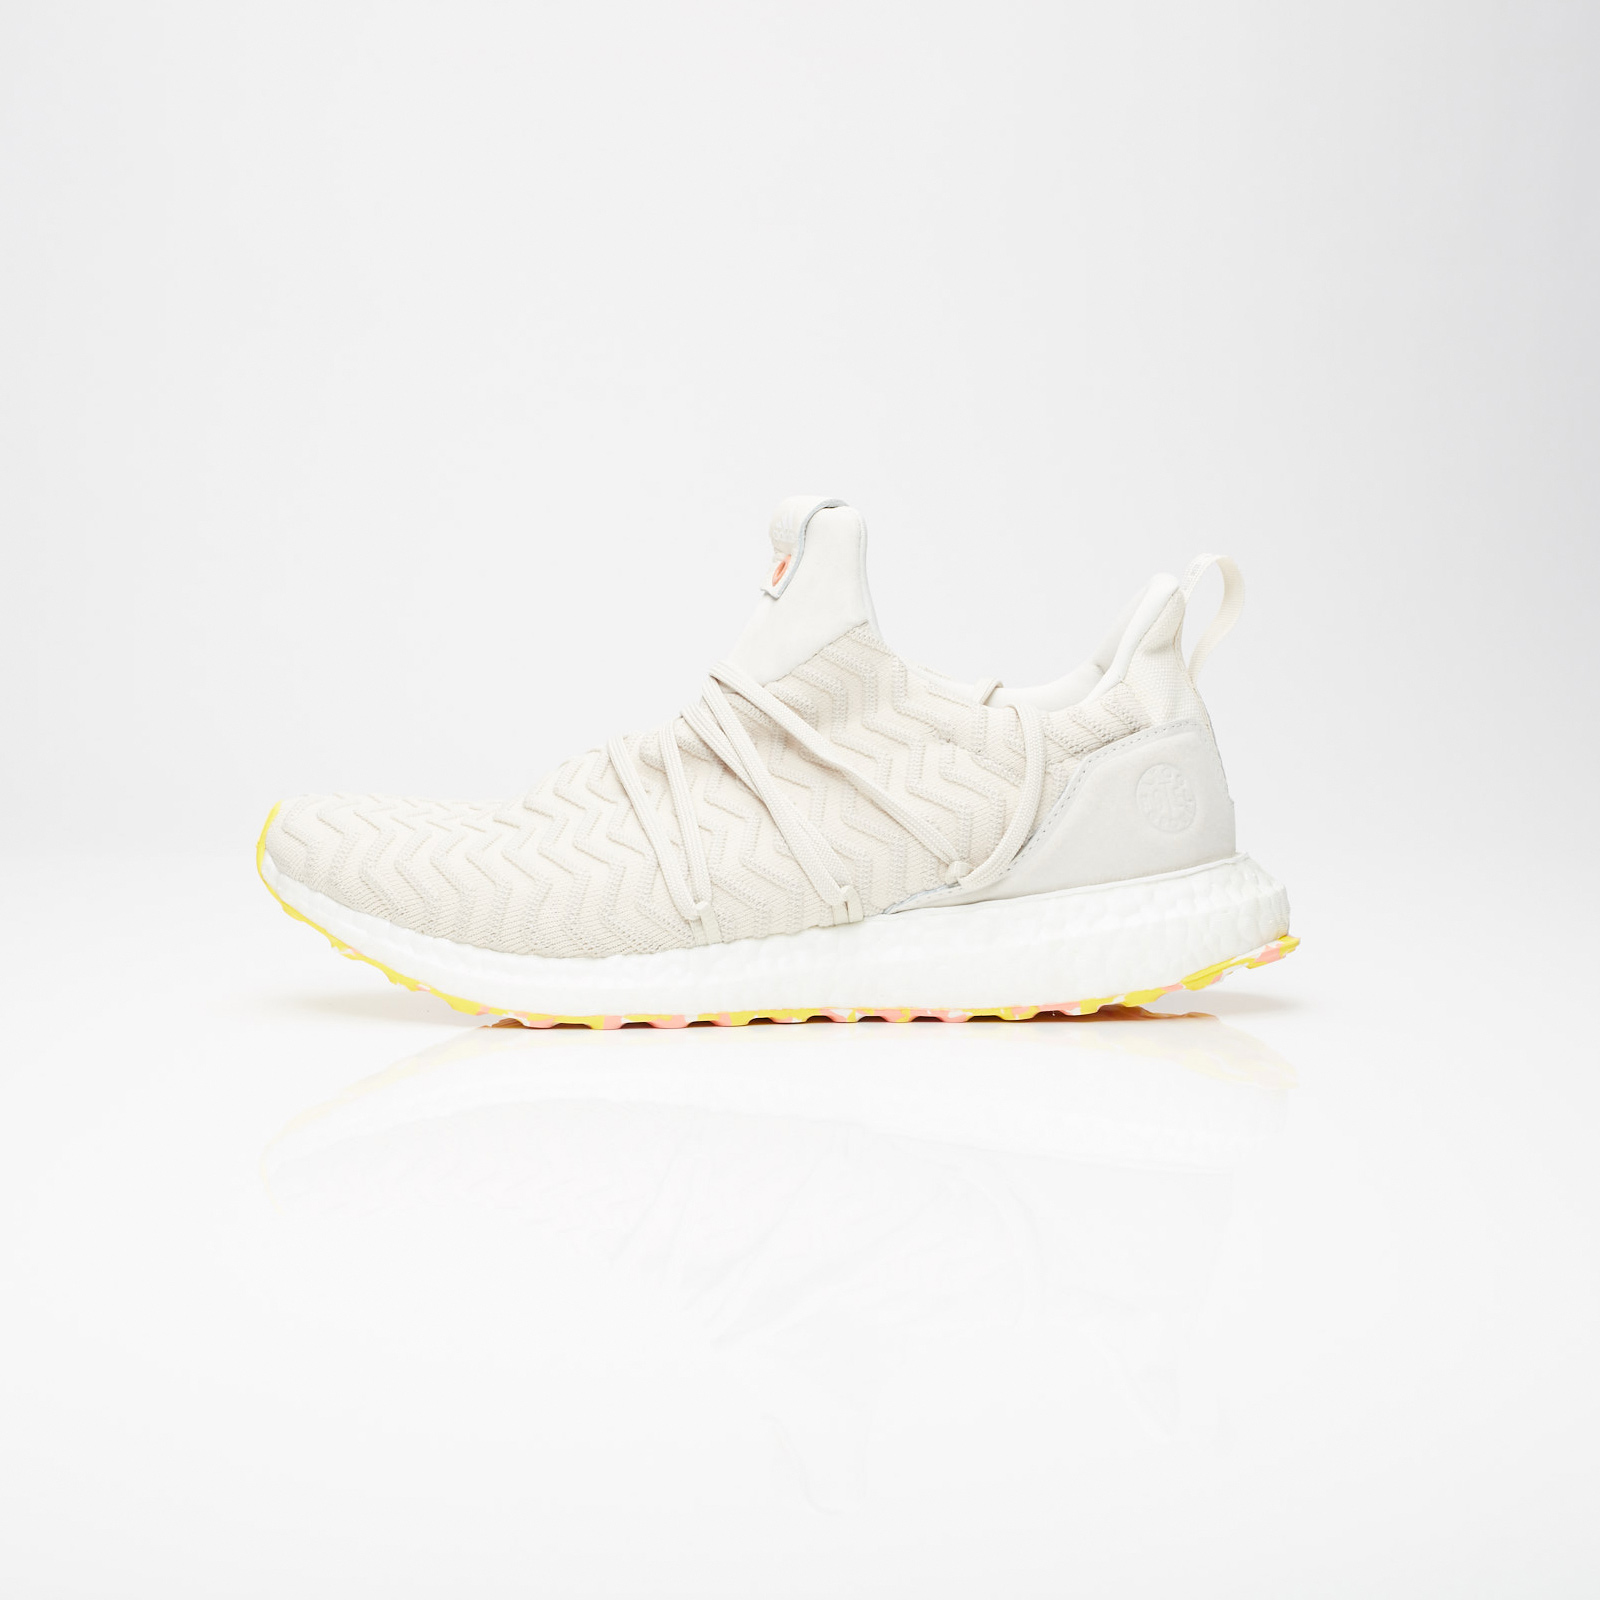 03-adidas-ultra-boost-consortium-a-kind-of-guise-bb7370